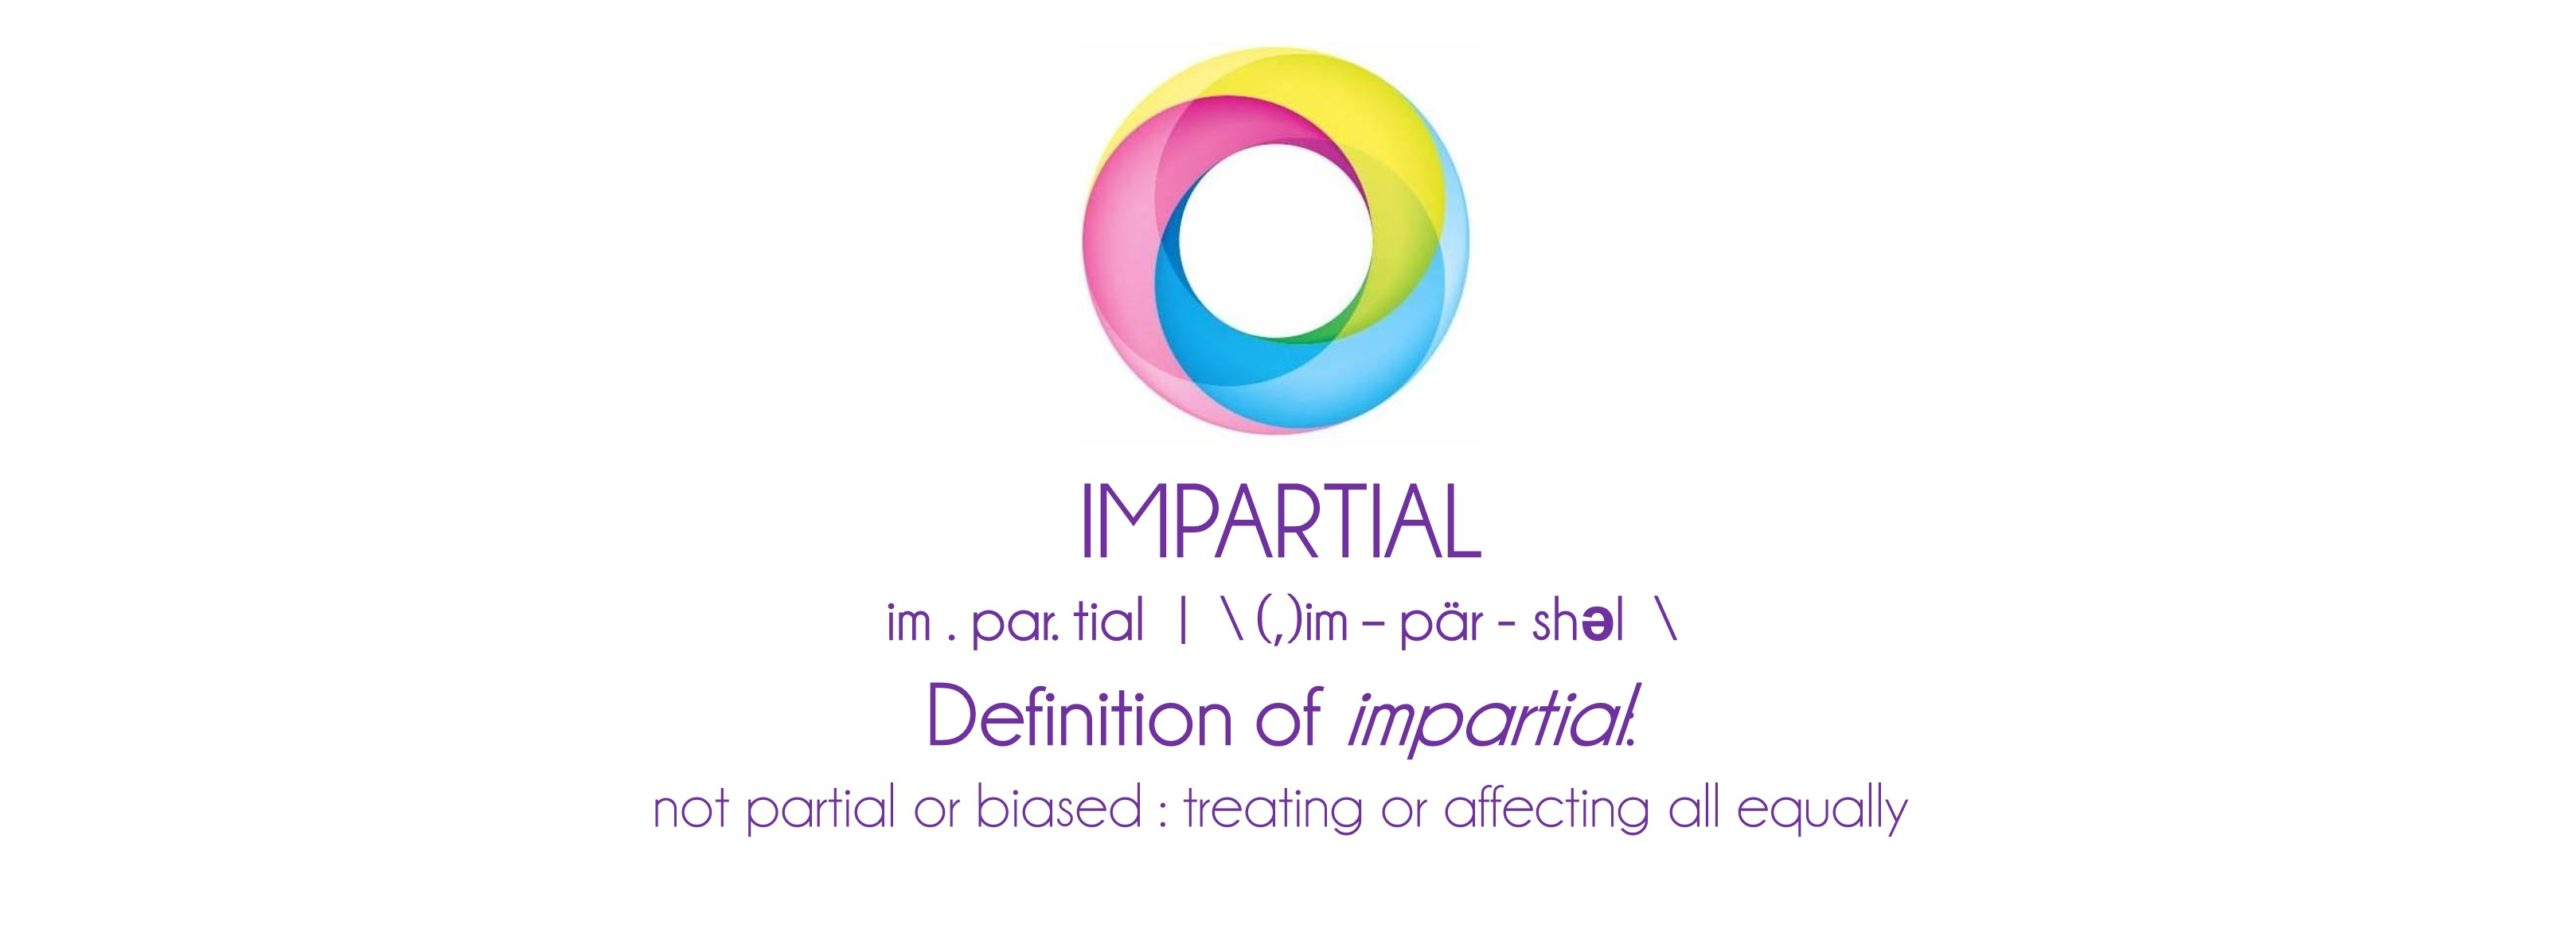 ipartial not overlaid